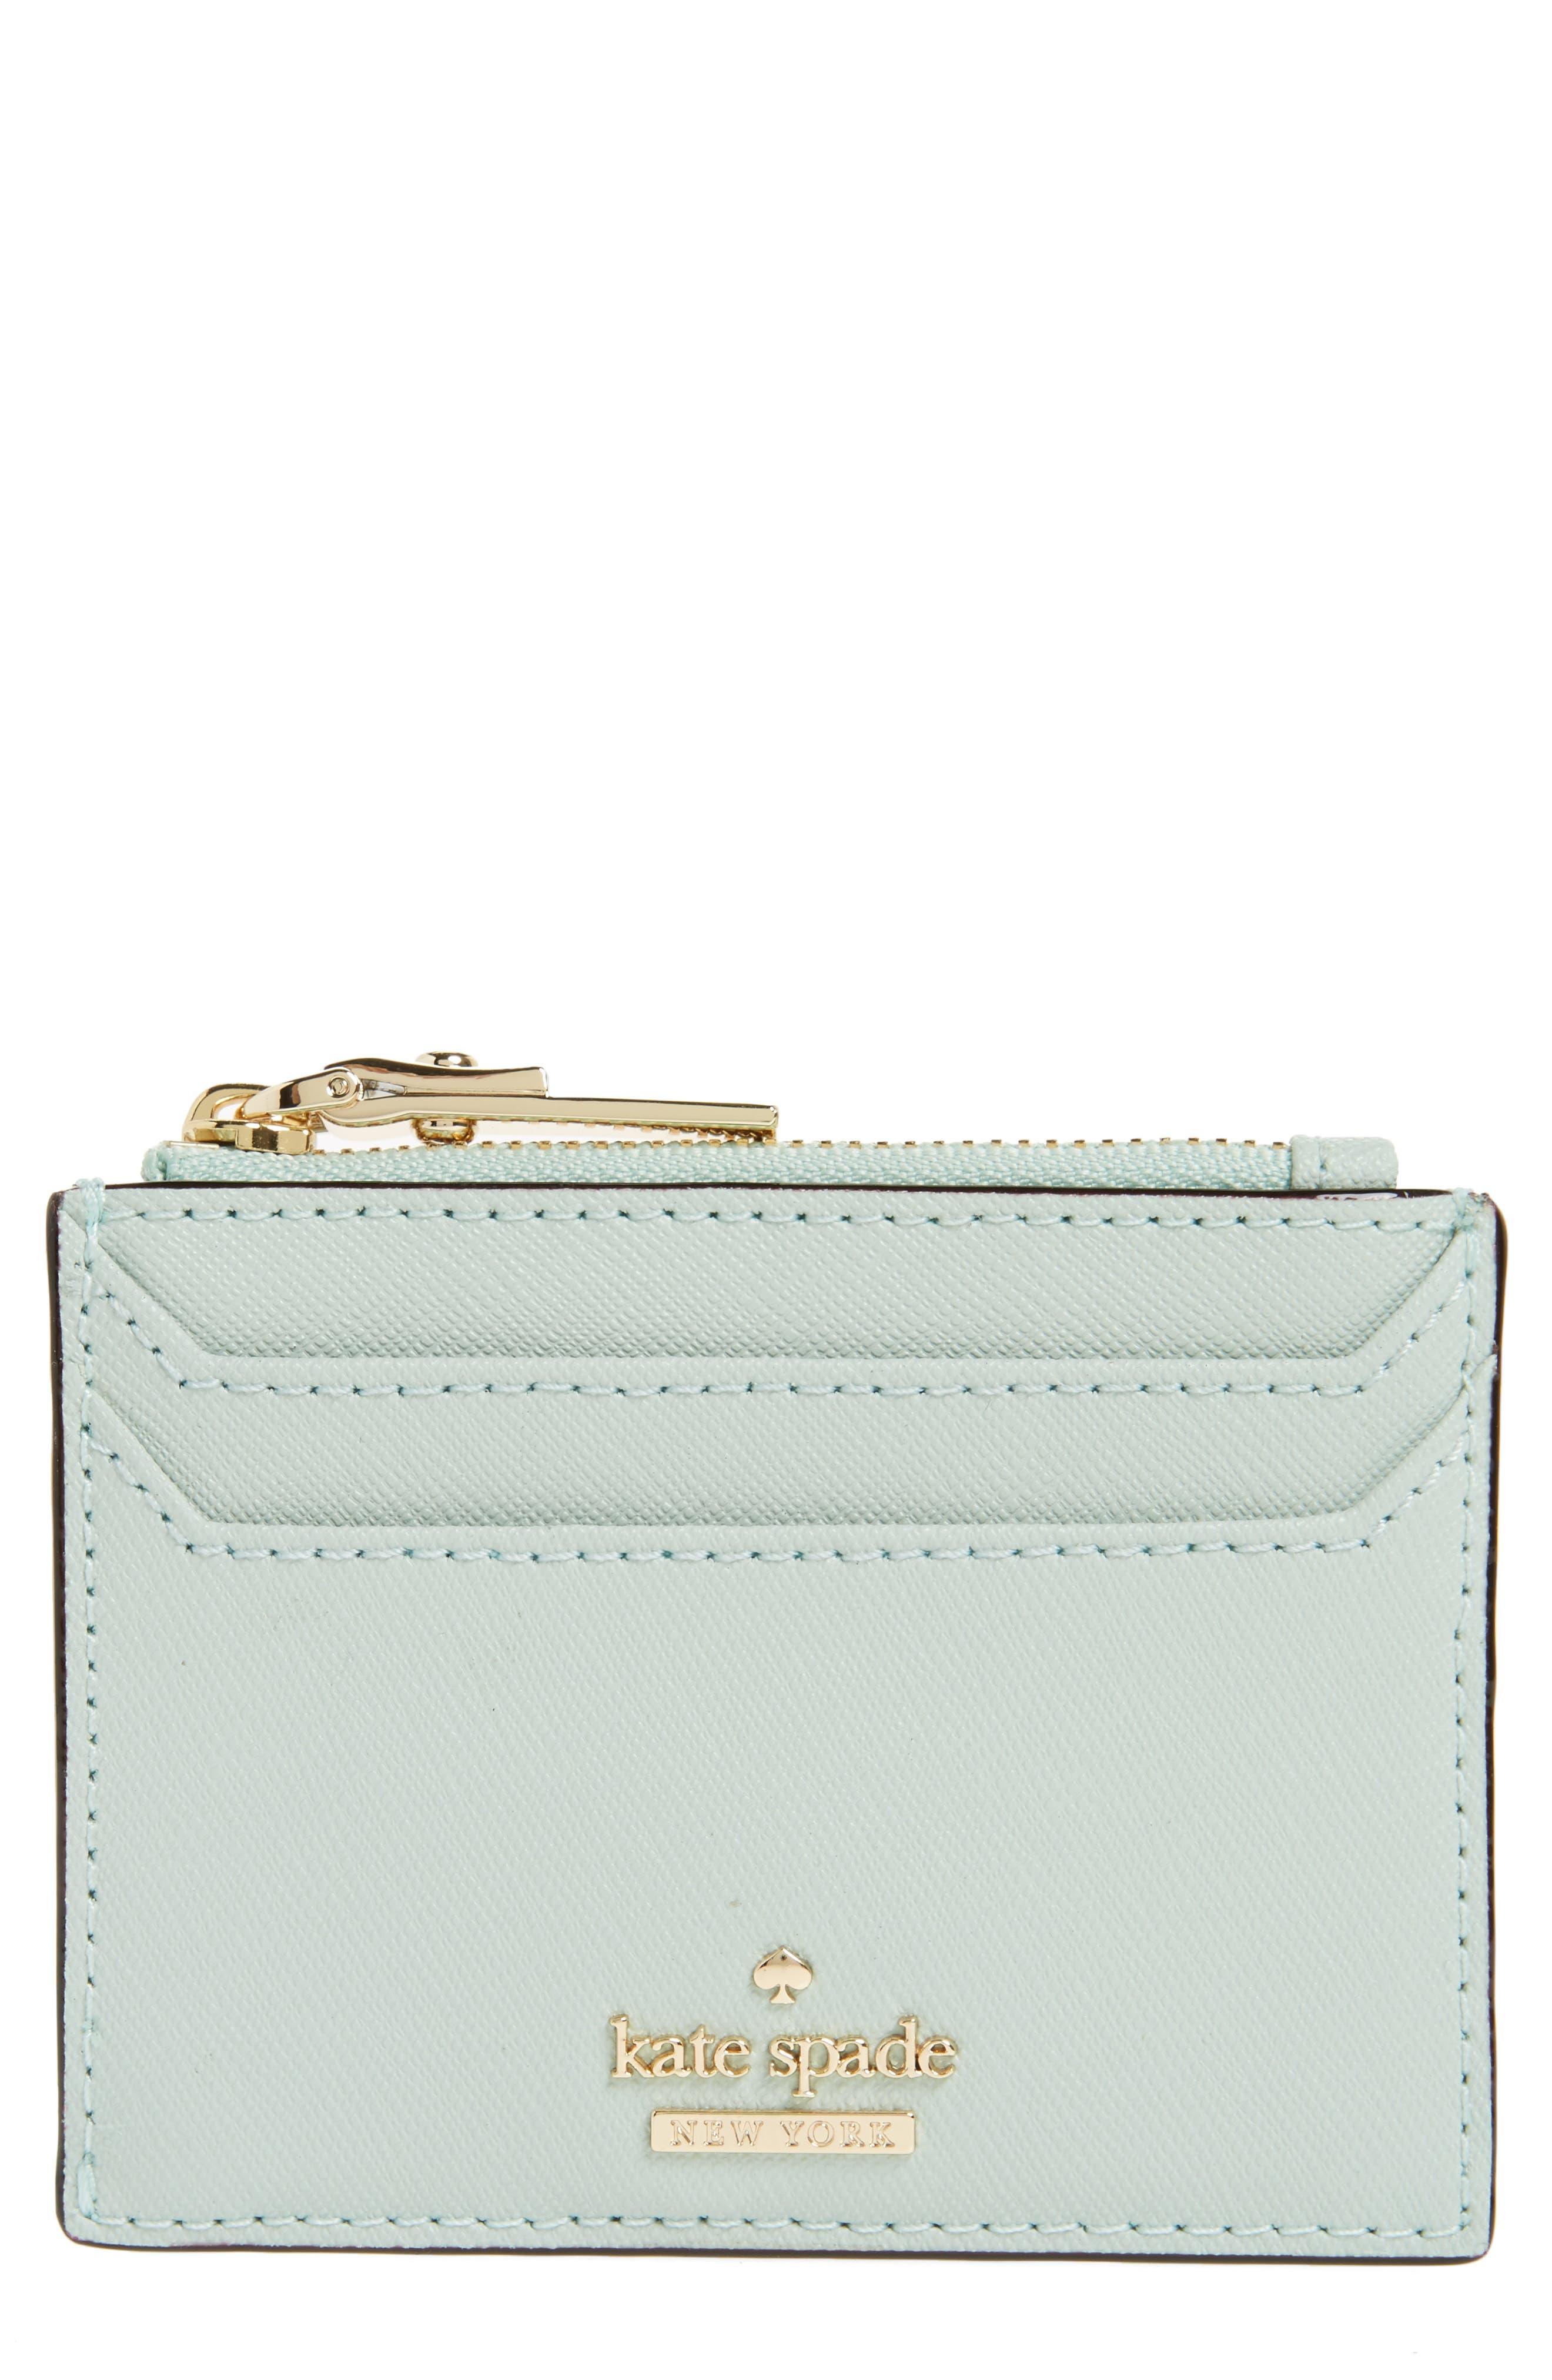 cameron street - lalena leather card case,                         Main,                         color, Misty Mint